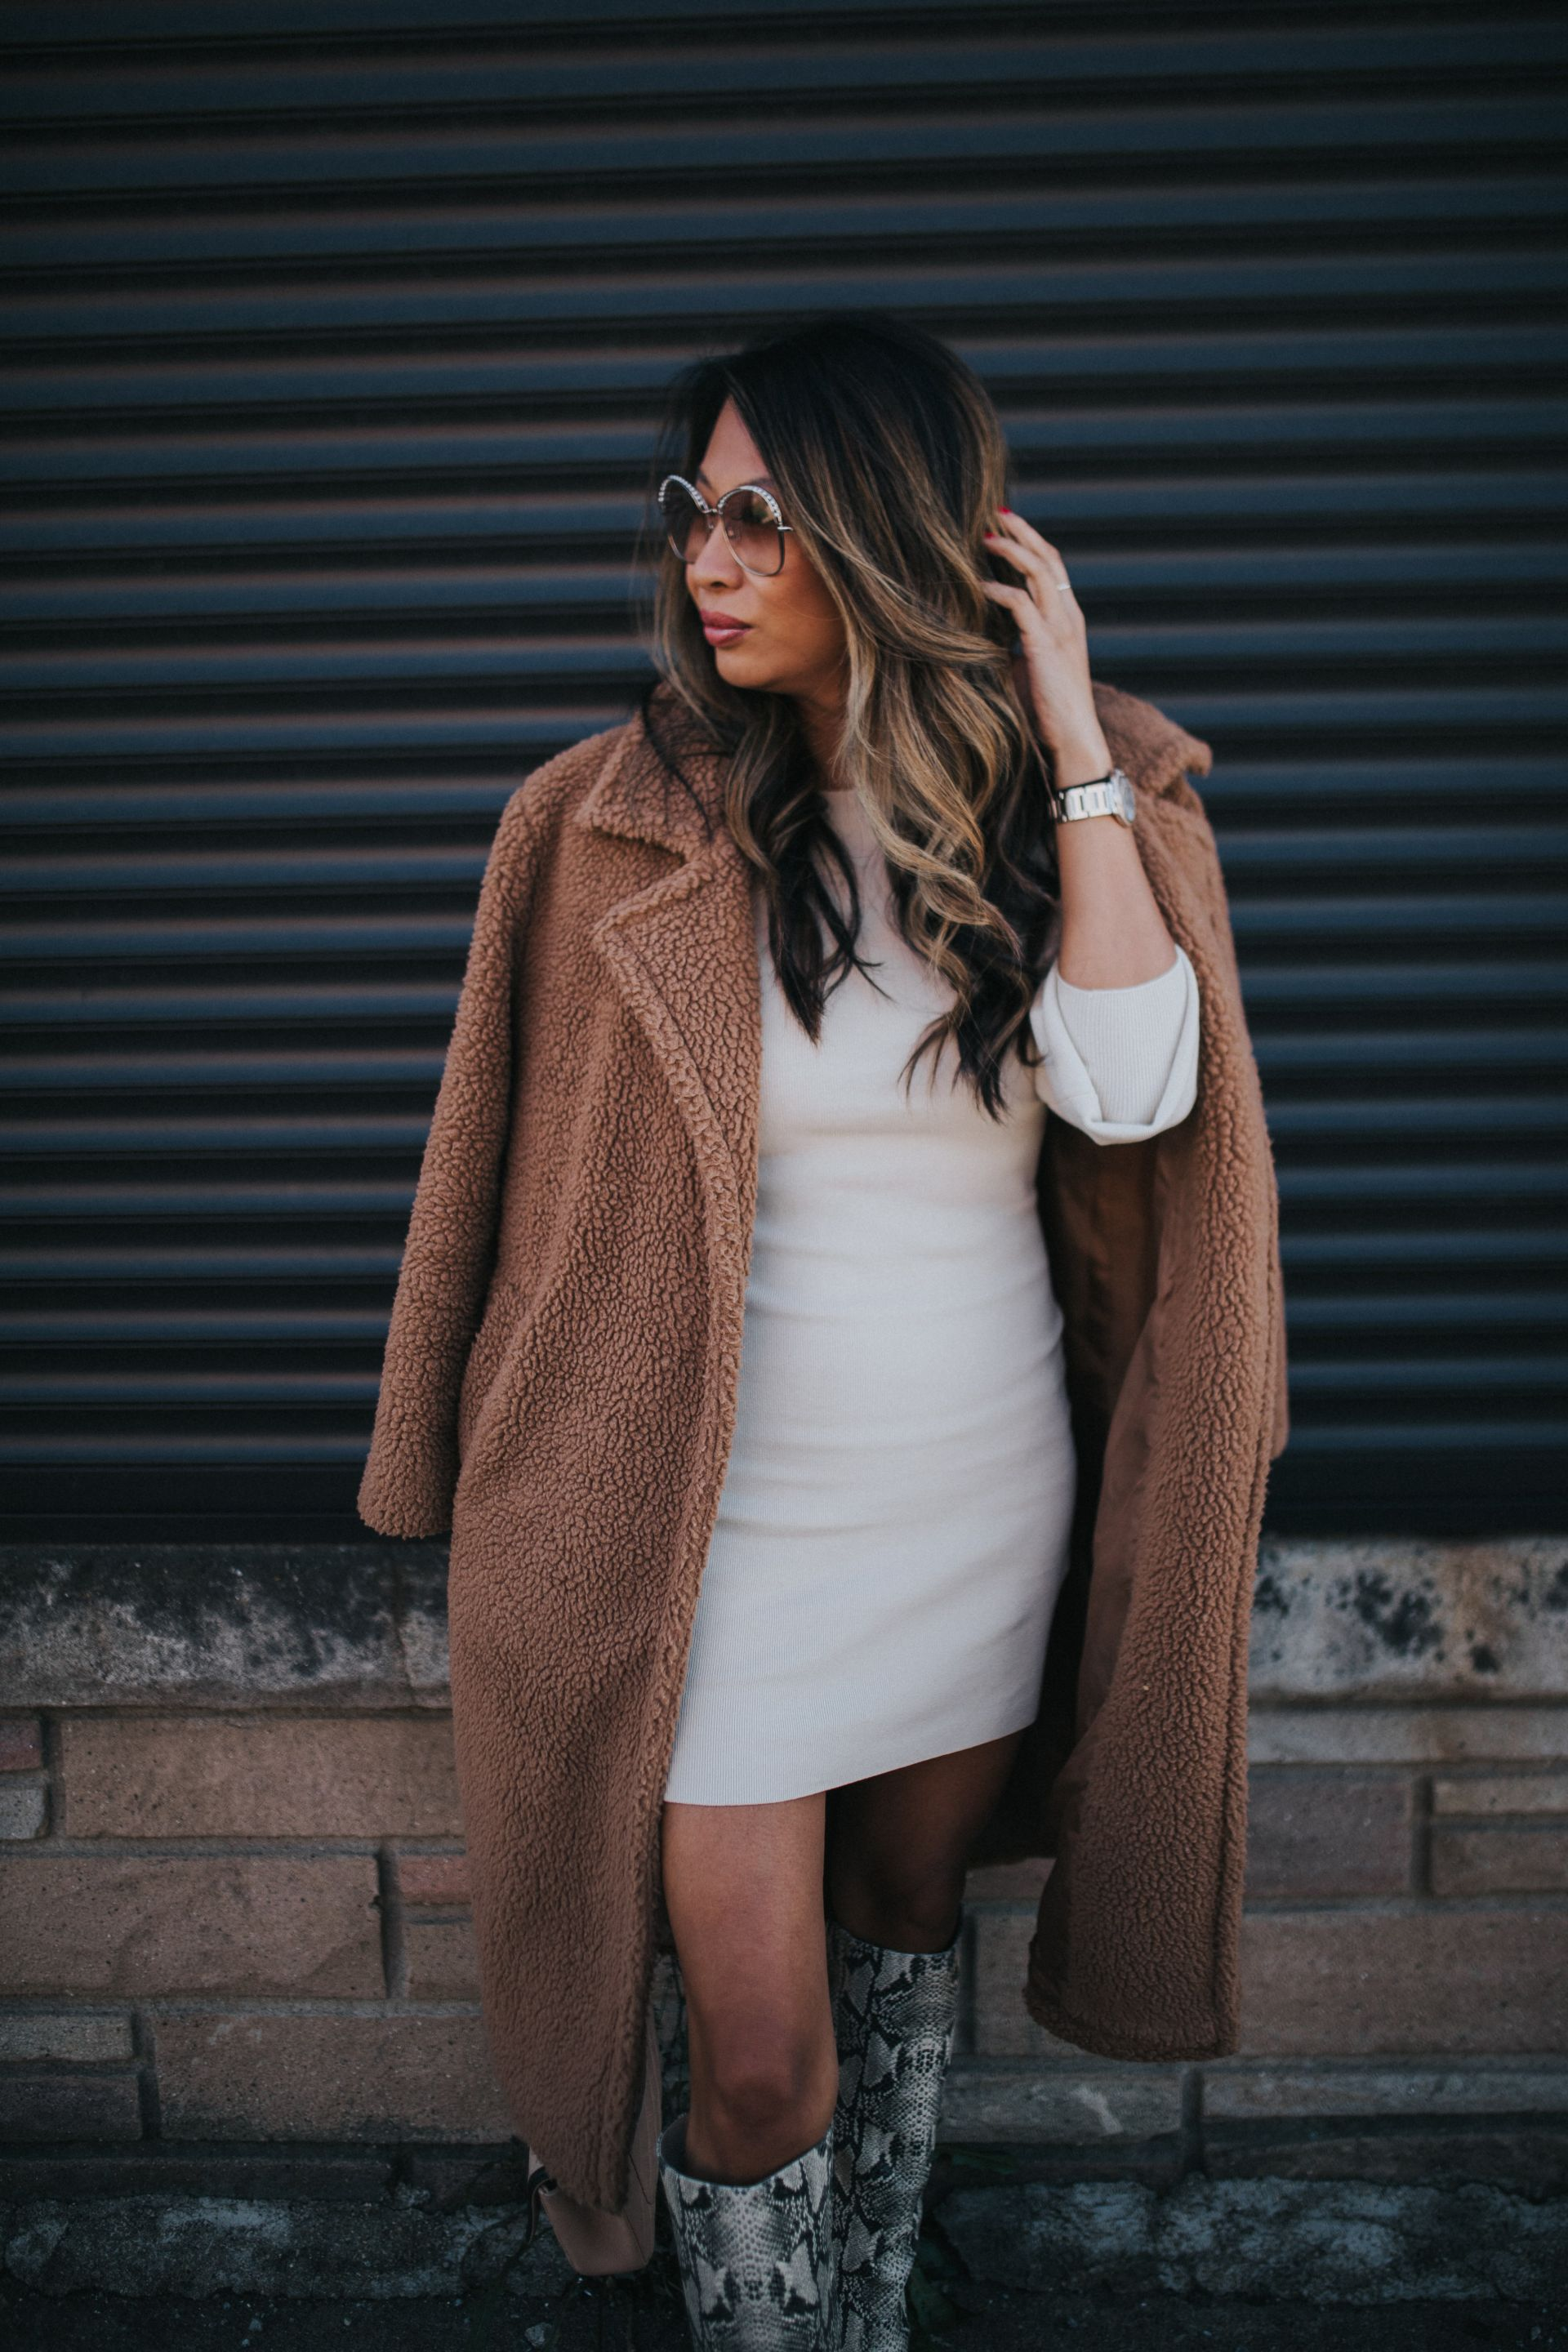 Jennifer Worman, Red Soles and Red Wine, fall styles, fall outfit ideas, outfit ideas, fall 2019 must haves, fall 2019 style, mom style, chicago blogger, sweater dress outfit ideas, teddy coat outfit ideas, how to style a sweater dress, snakeskin boots, how to style snakeskin boots for fall, how to wear a teddy coat for fall, Leith Long Sleeve Sweater Dress, Sam Edelman Hai Knee High Boot, Nordstrom shopping finds, nordstrom try on, nordstrom fall styles